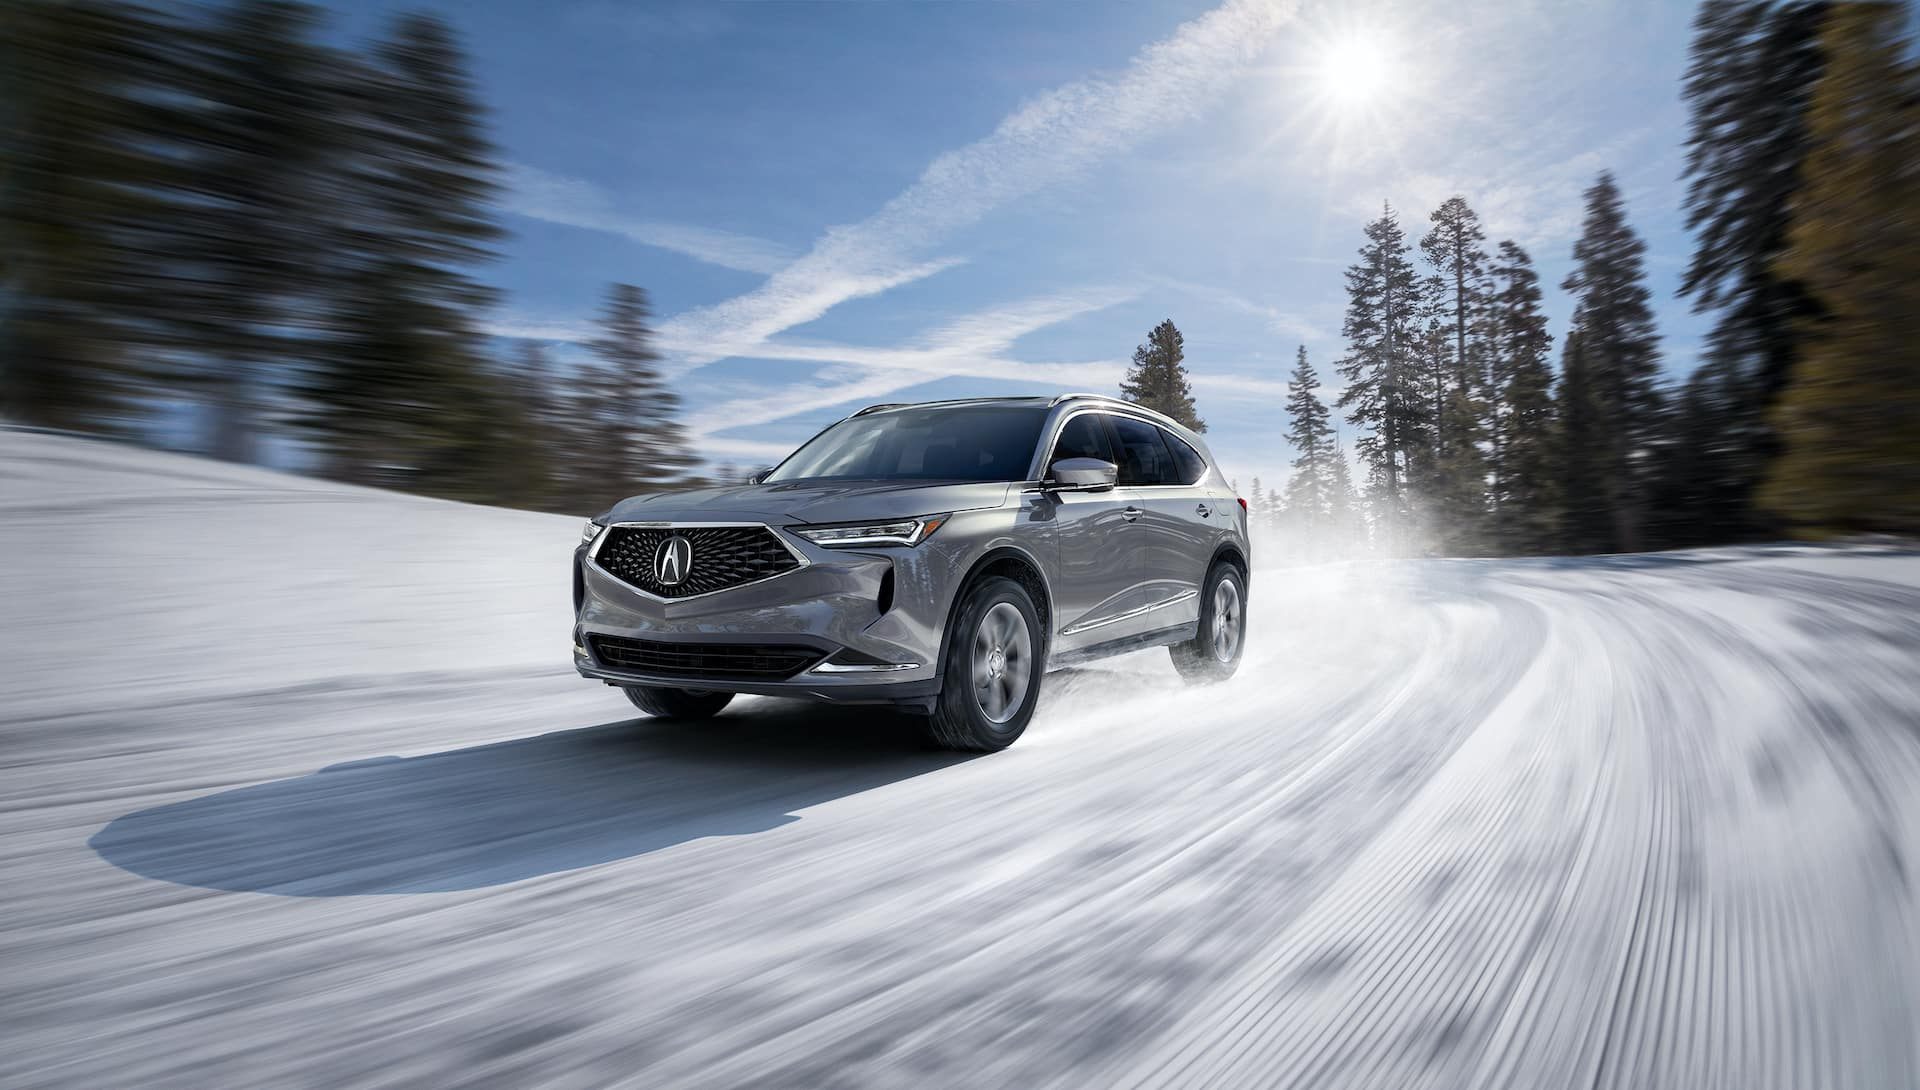 New Acura Car for Sale in Eugene